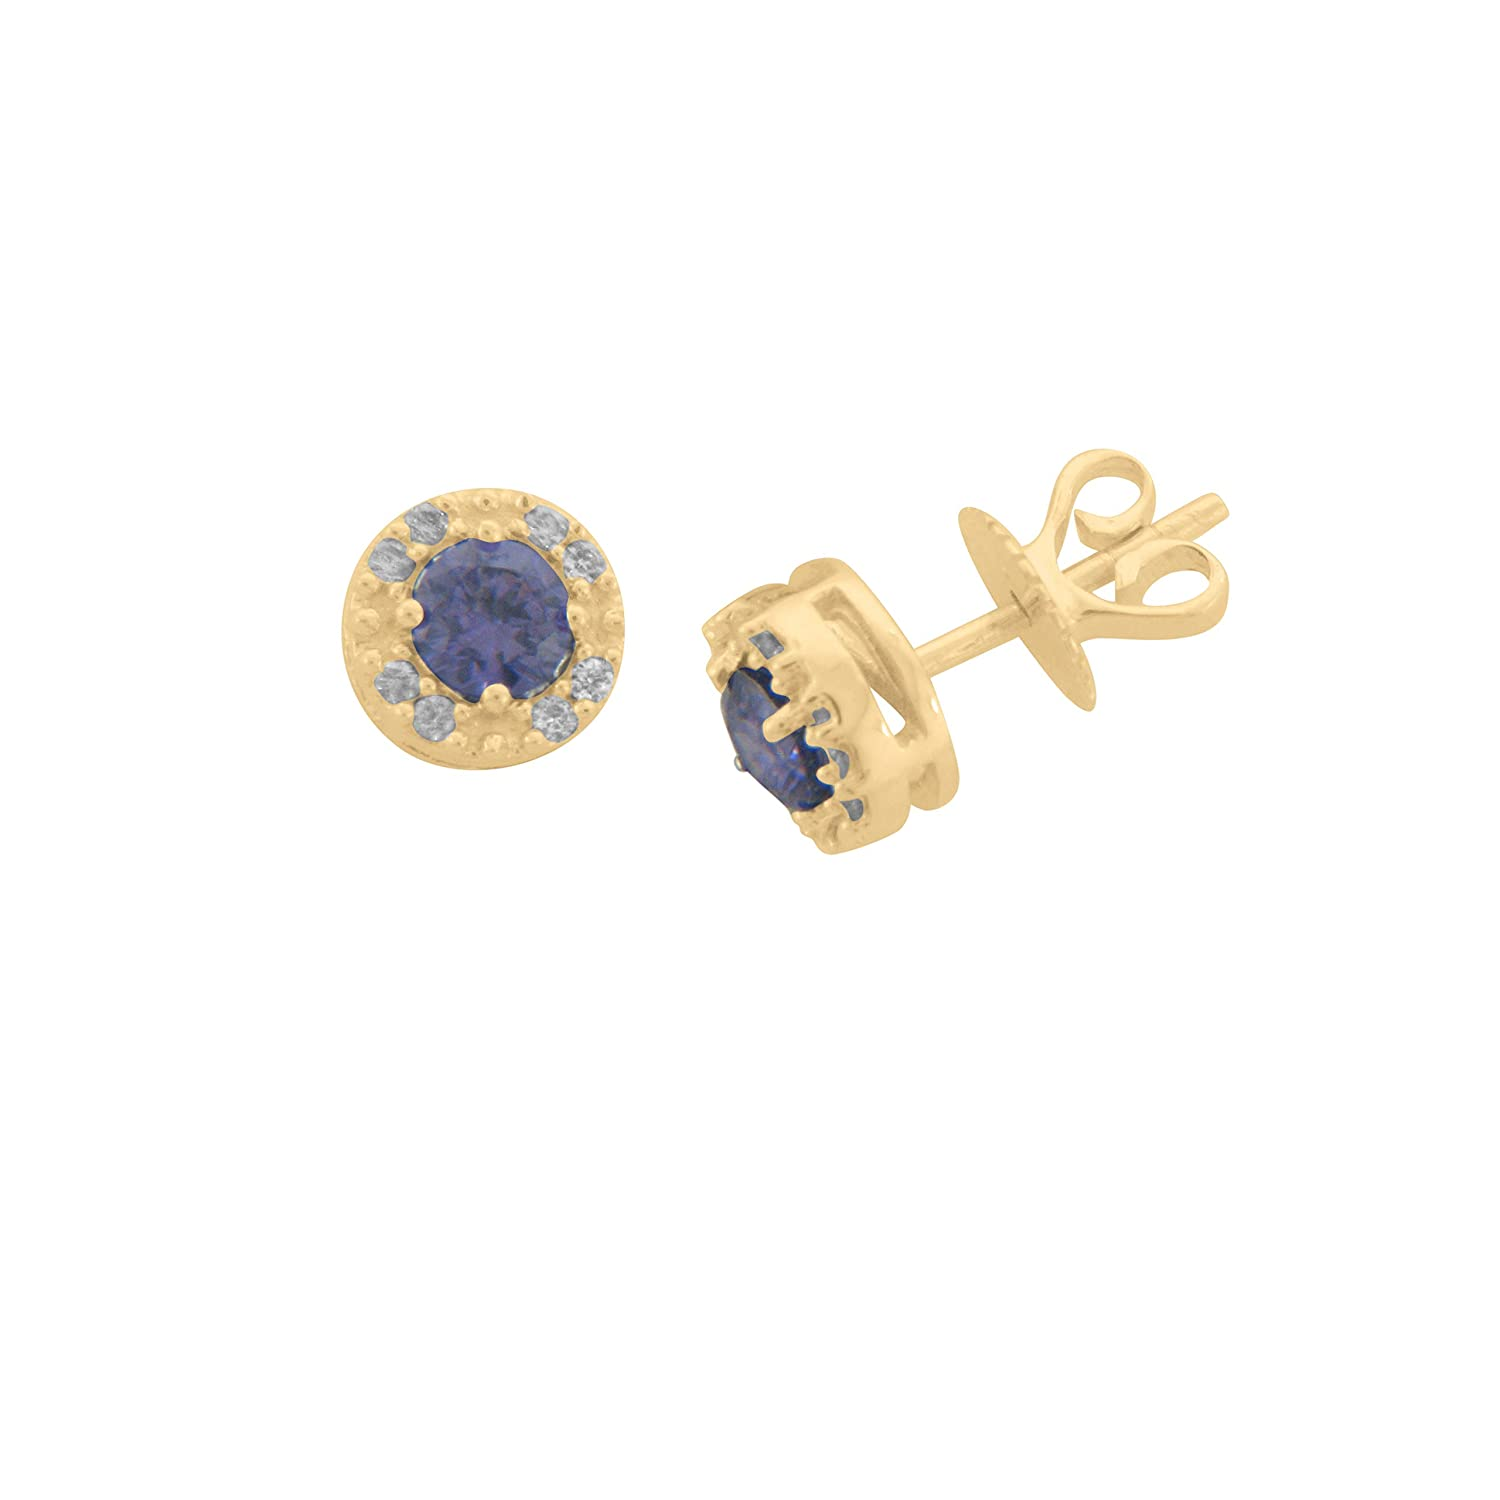 DTJEWELS 0.58 Cts Sim Diamonds /& Sapphire Round Shape Stud Earrings For Girls In 14K Gold Plated 925